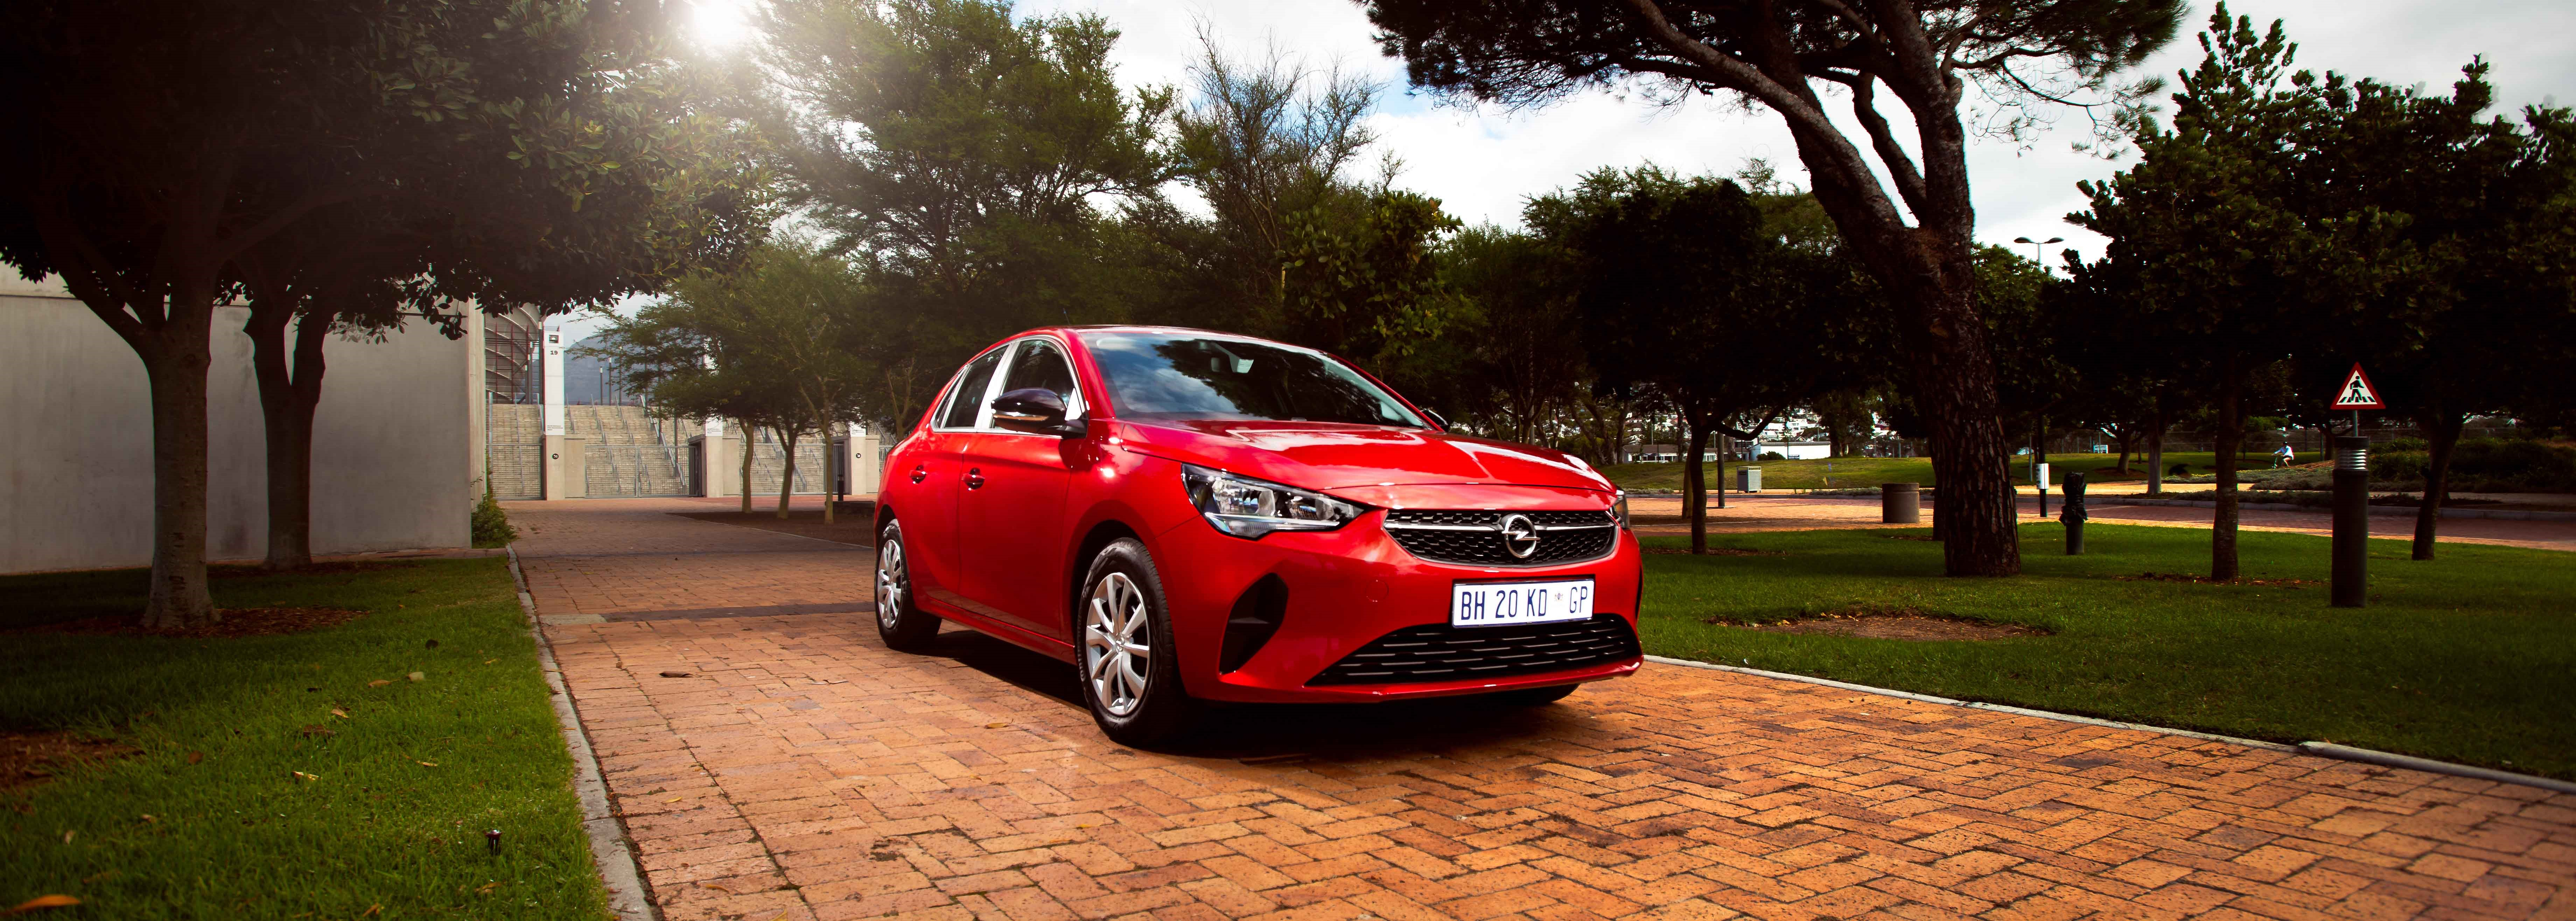 Opel vehicles in SA to be distributed by PCSA